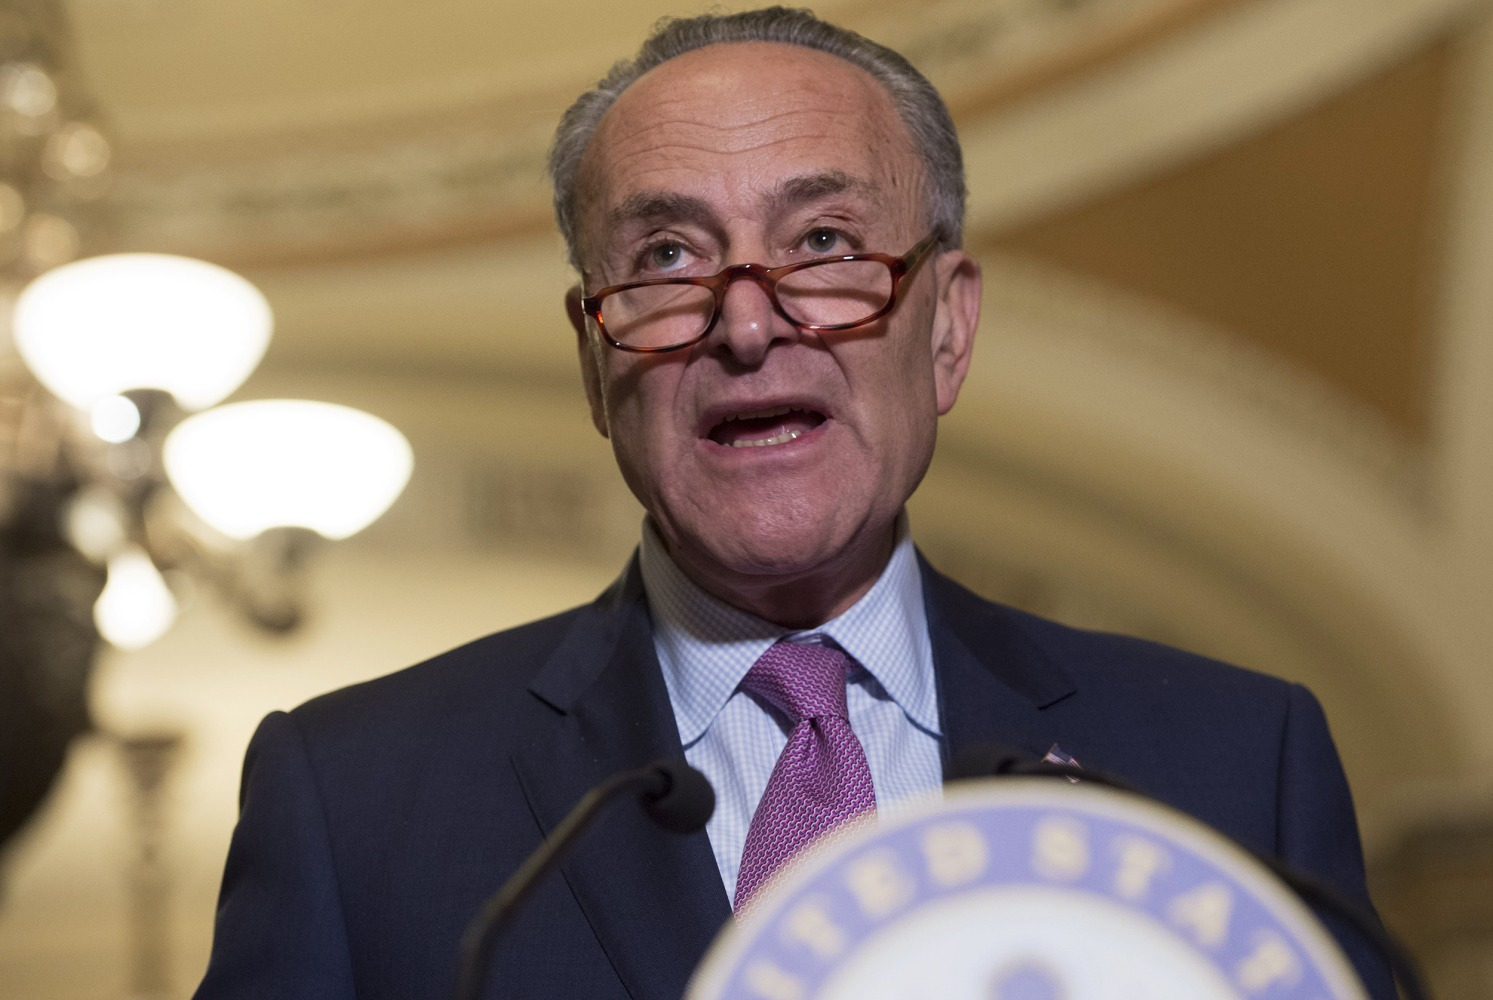 Sen. Schumer calls for crackdown on at-home DNA testing kits